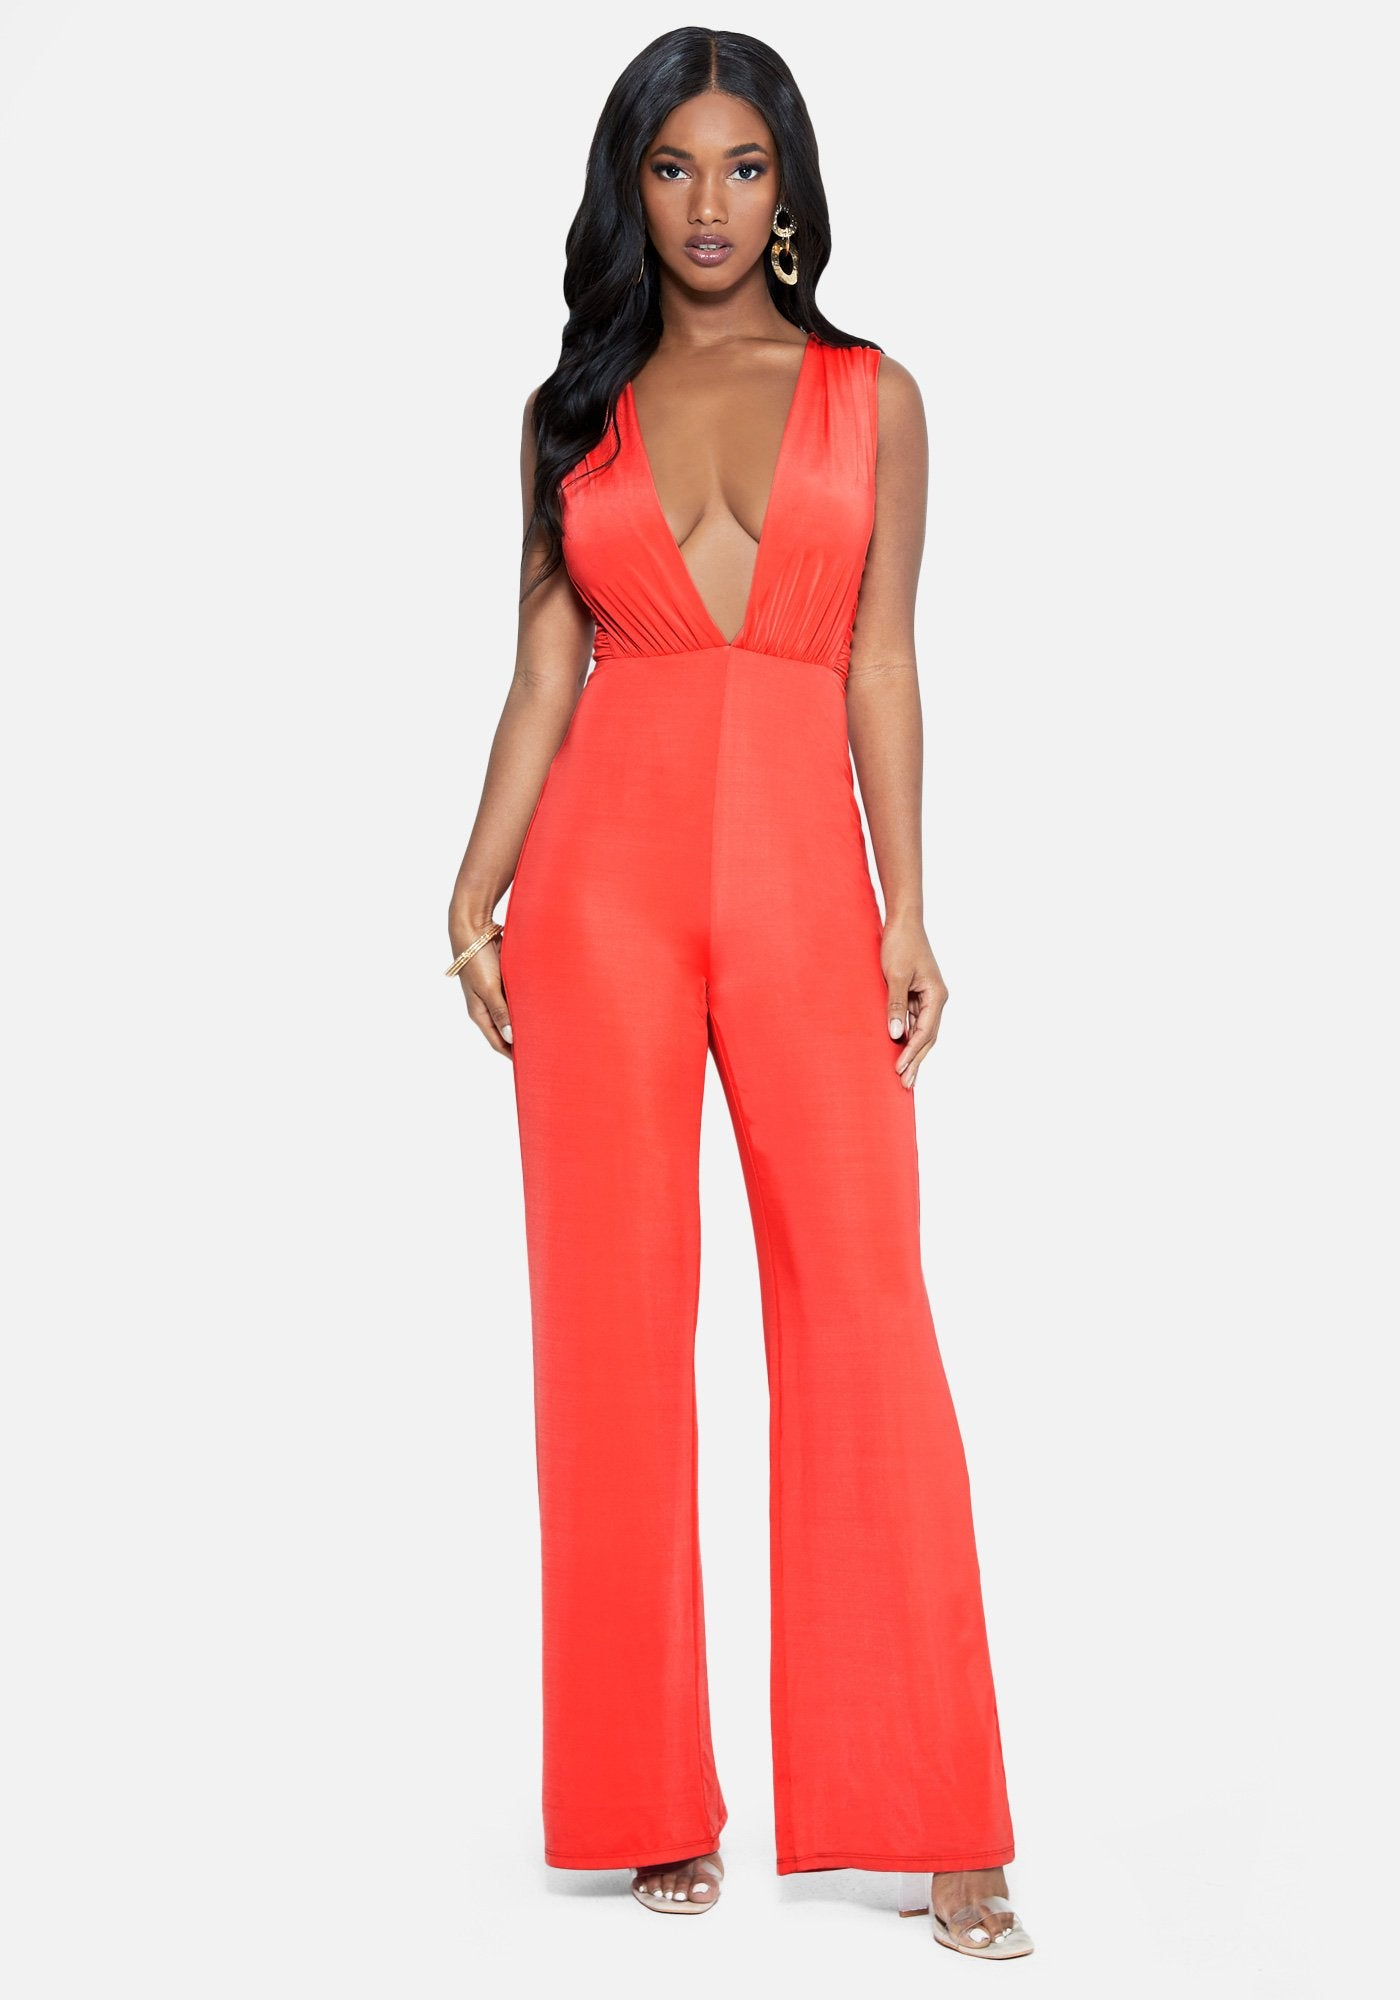 Bebe Women's Pleated Plunge Neck Jumpsuit, Size XXS in PINK ICING Cotton